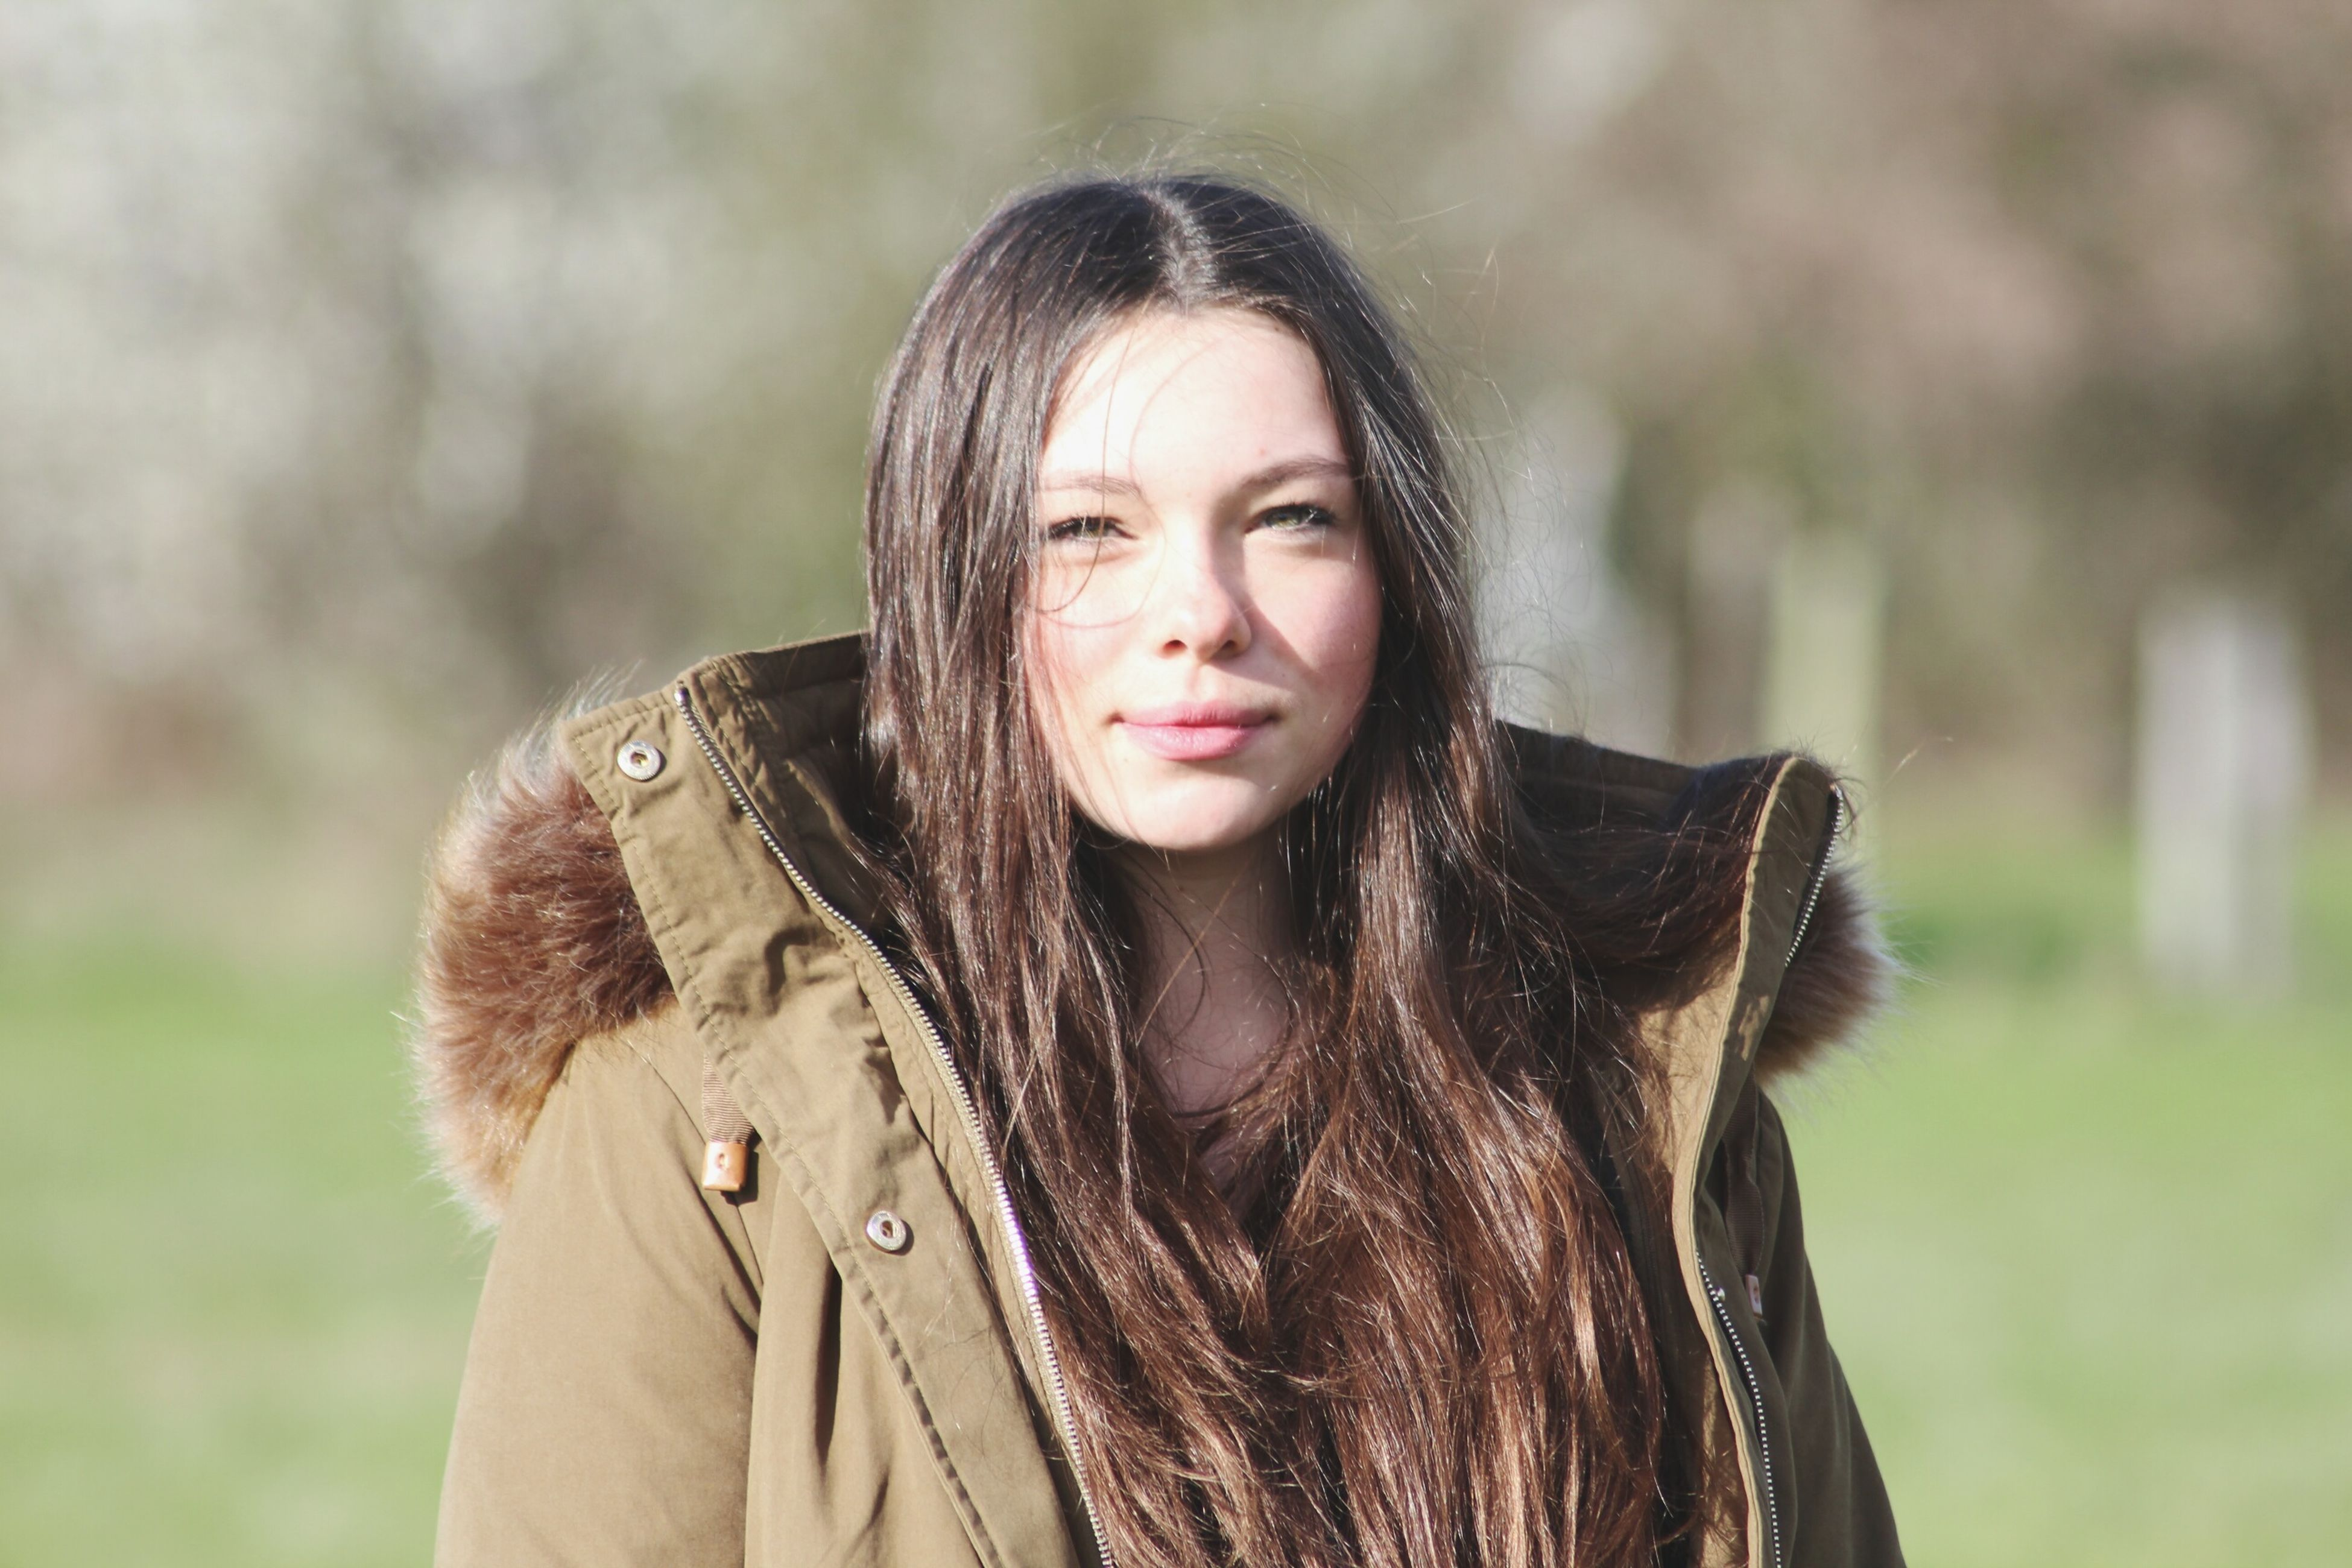 young adult, portrait, young women, person, looking at camera, long hair, front view, smiling, lifestyles, focus on foreground, leisure activity, casual clothing, waist up, happiness, standing, headshot, brown hair